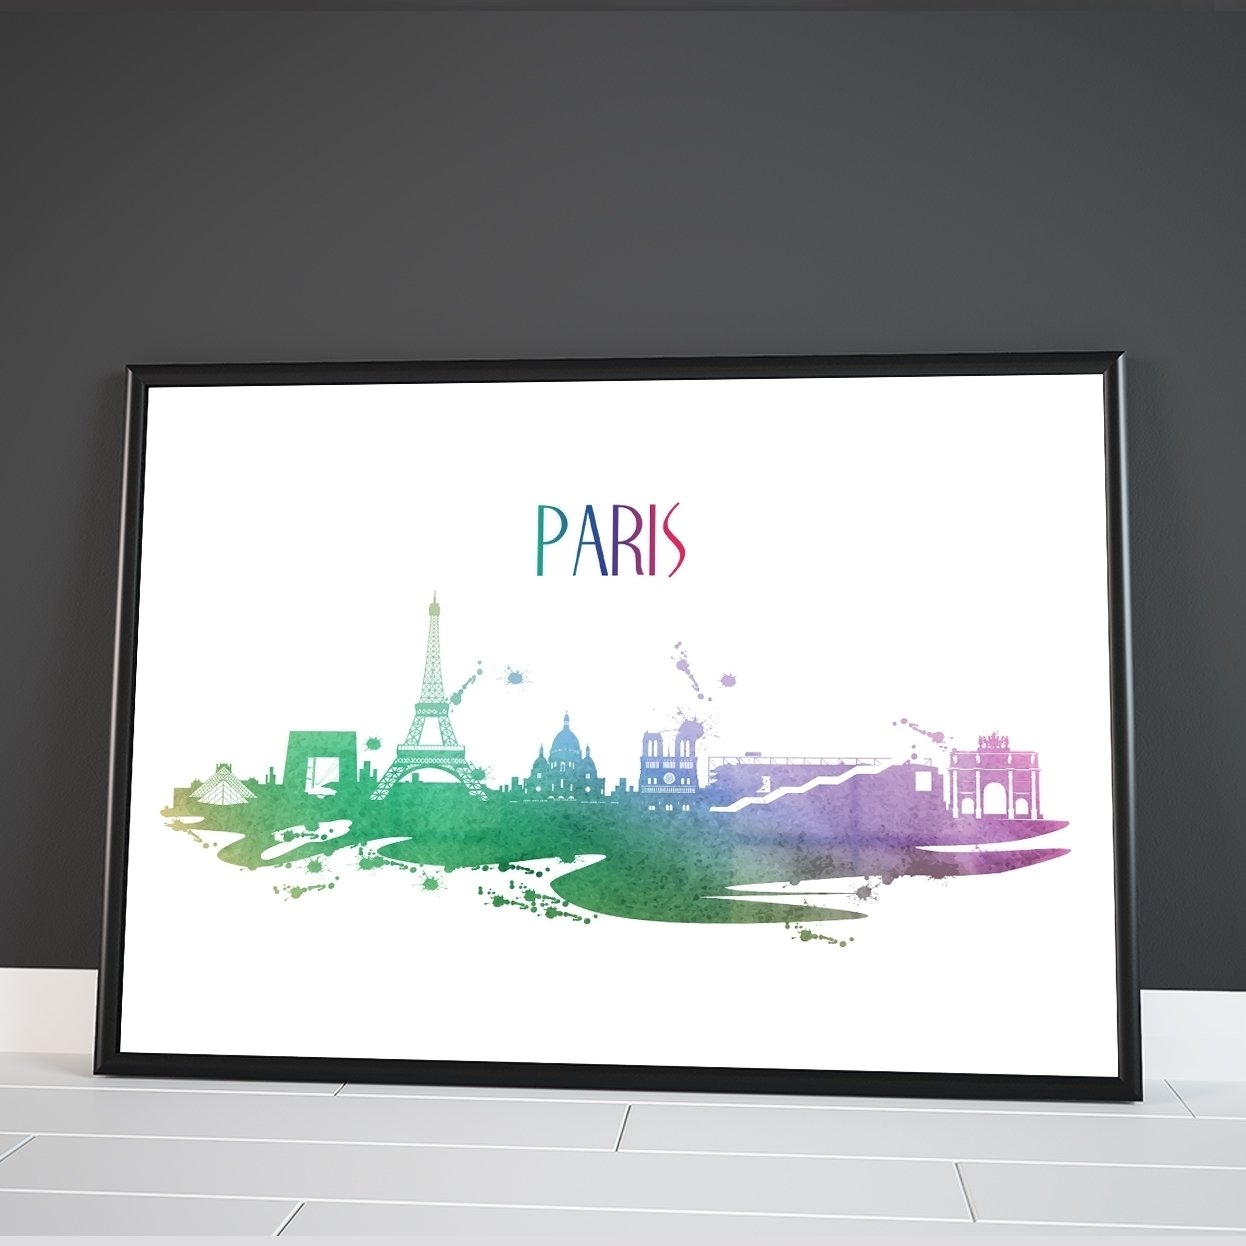 Inspired Walls Paris Skyline di Città del Mondo Watercolour Colourful Wall Dã © Cor Poster Stampa Artistica Inspired Walls®